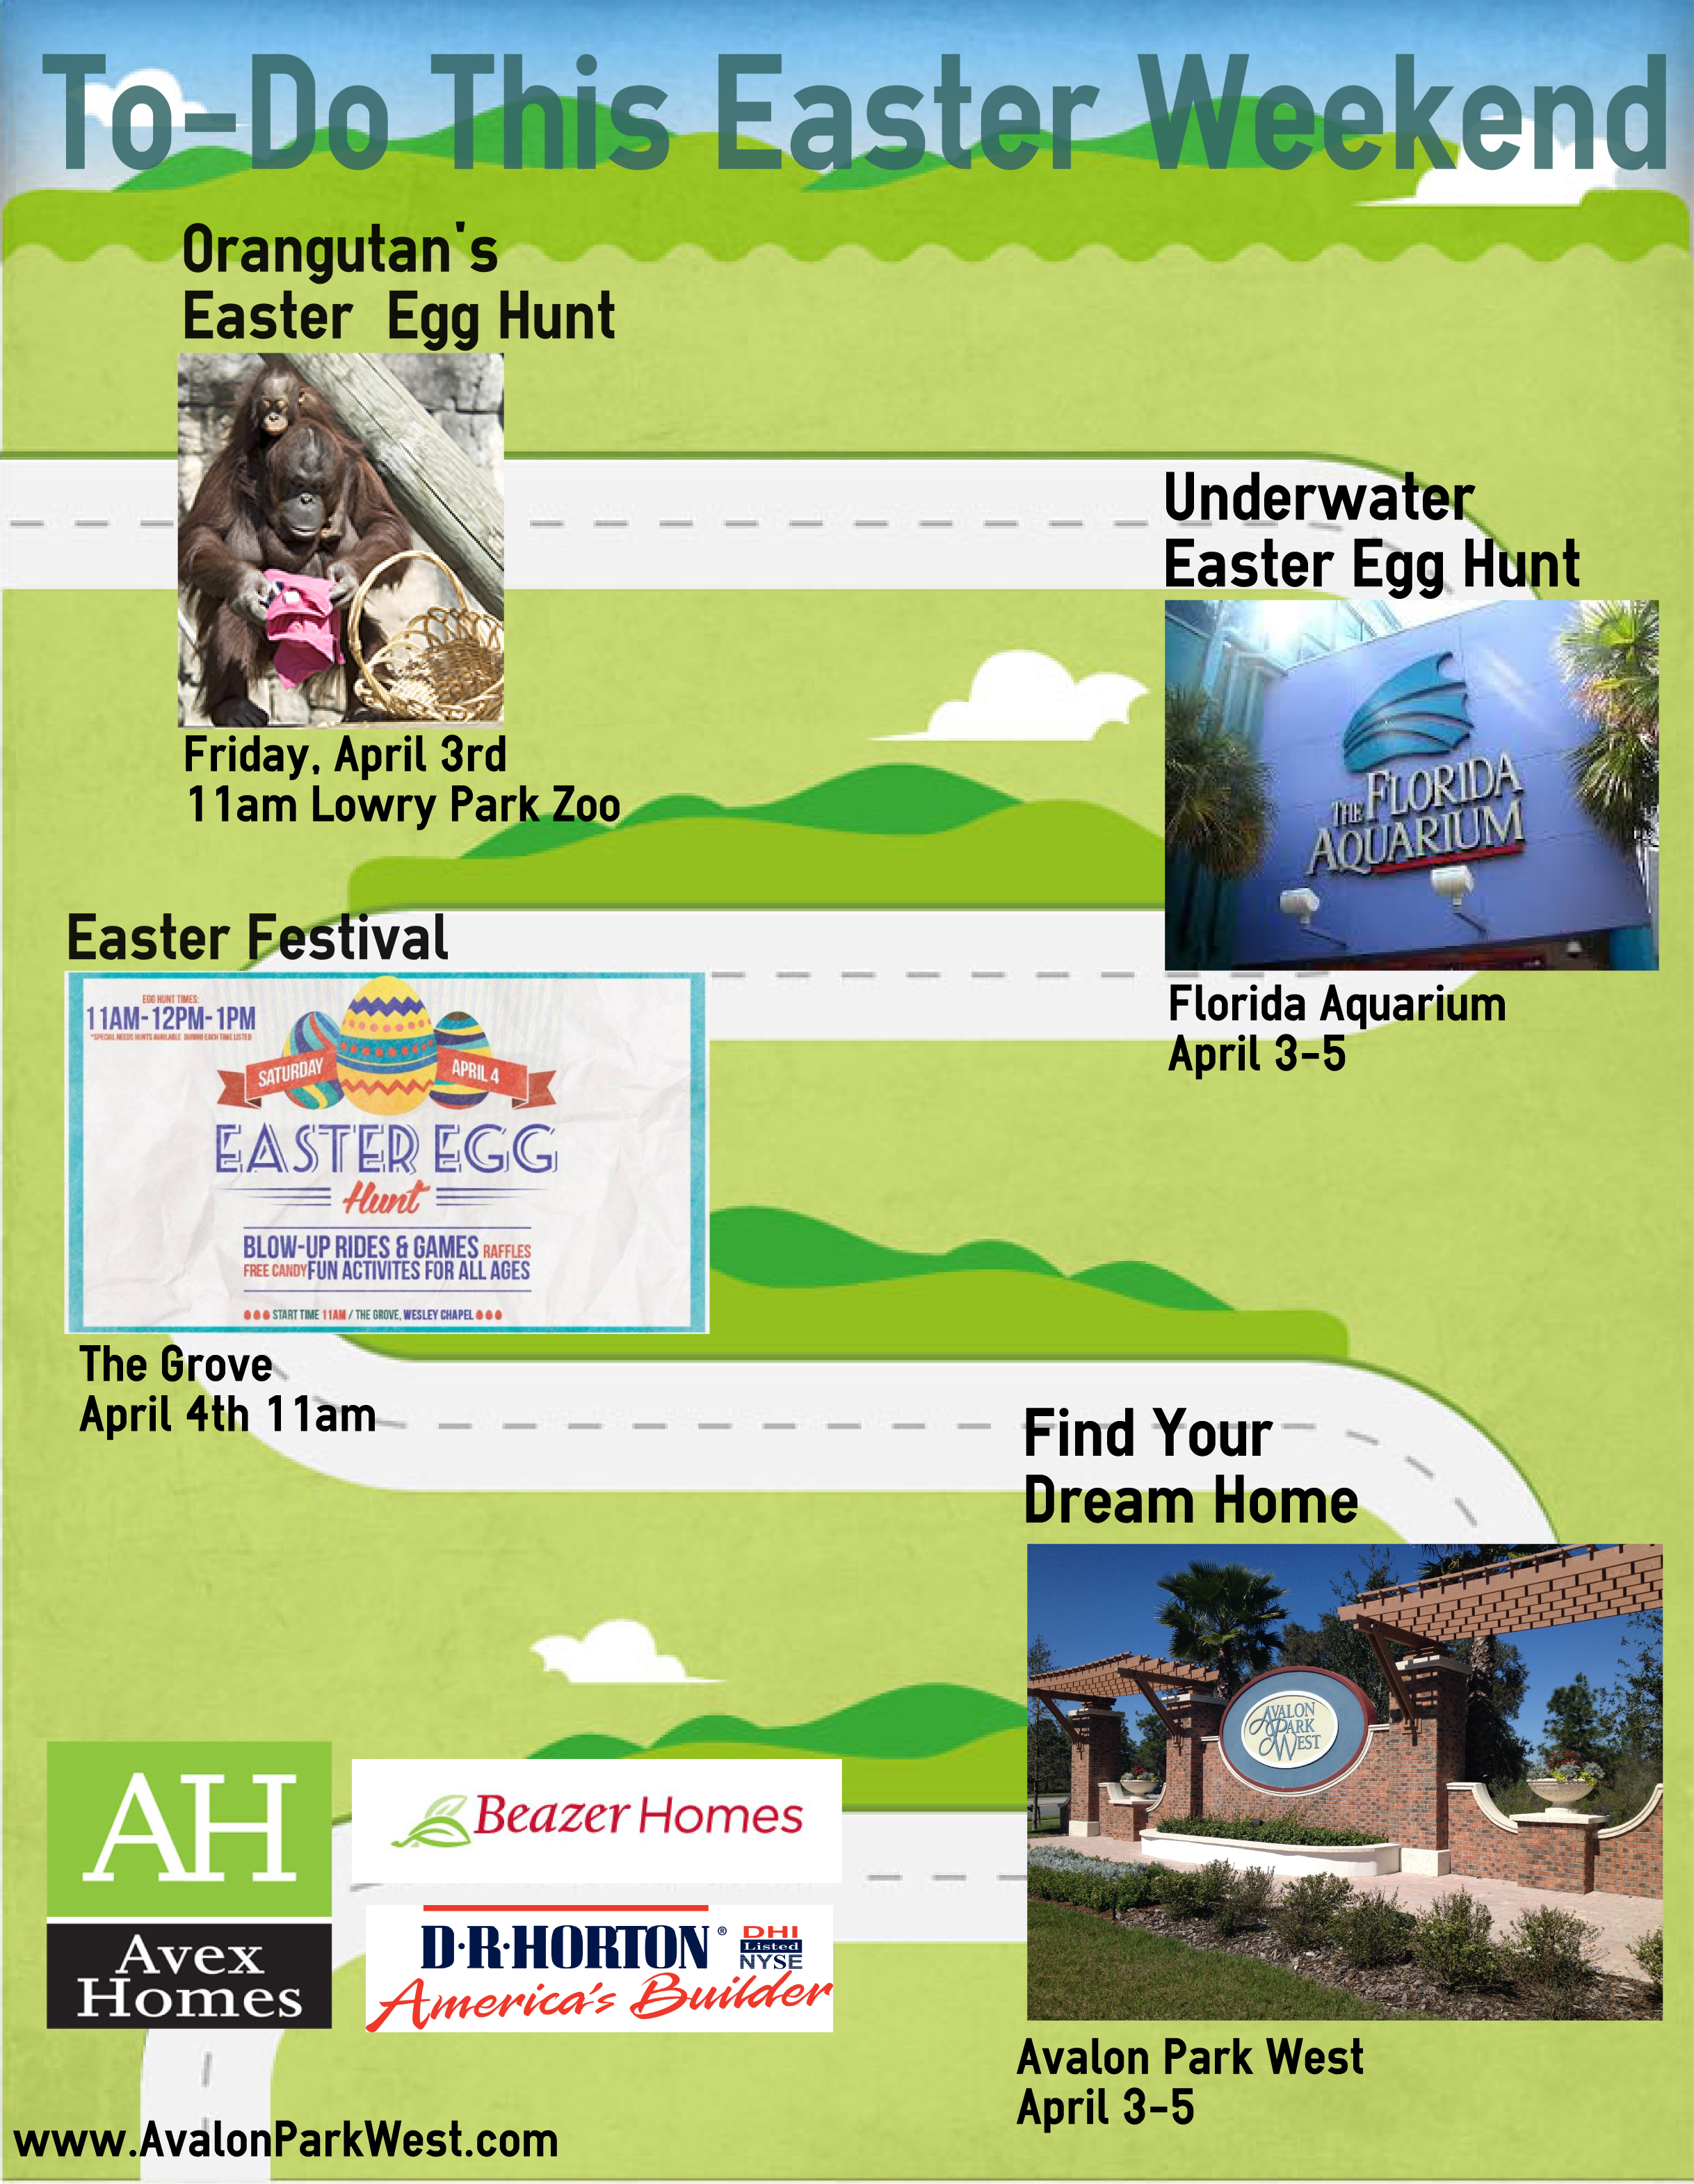 Easter weekend activity flyer